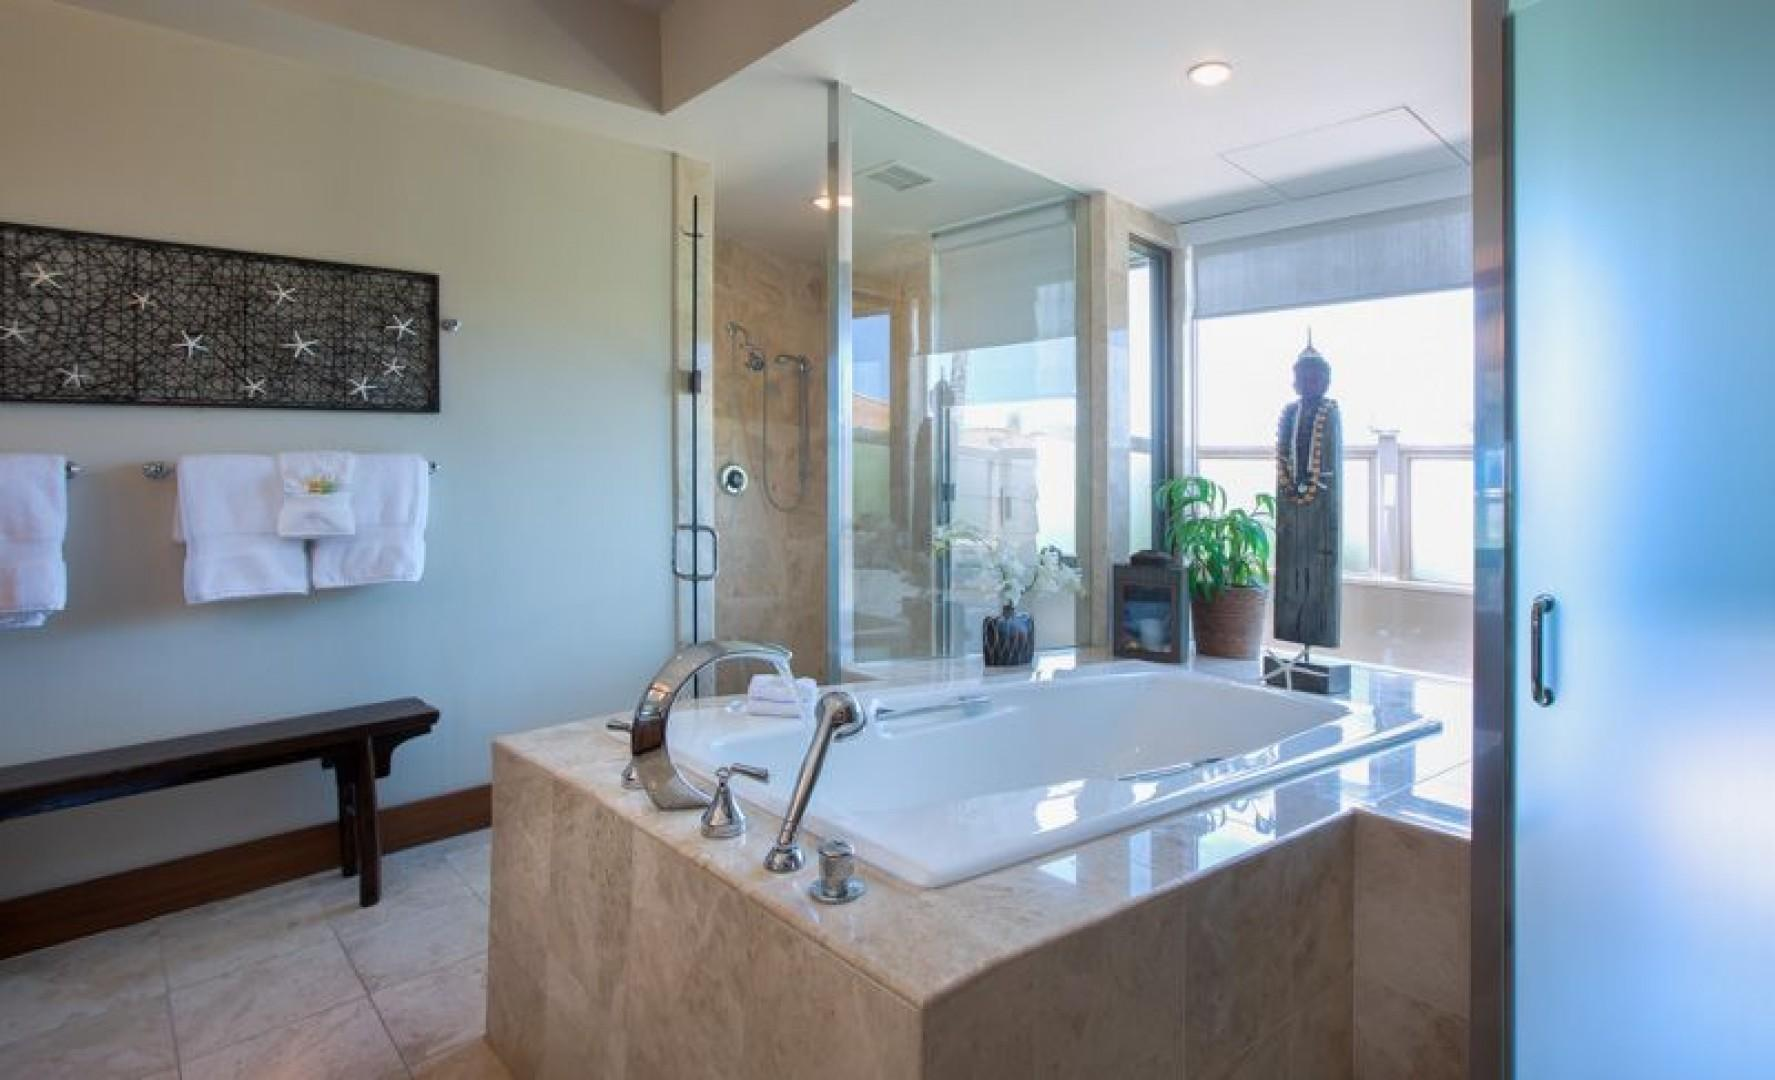 Master Bath with a soaking tub and shower